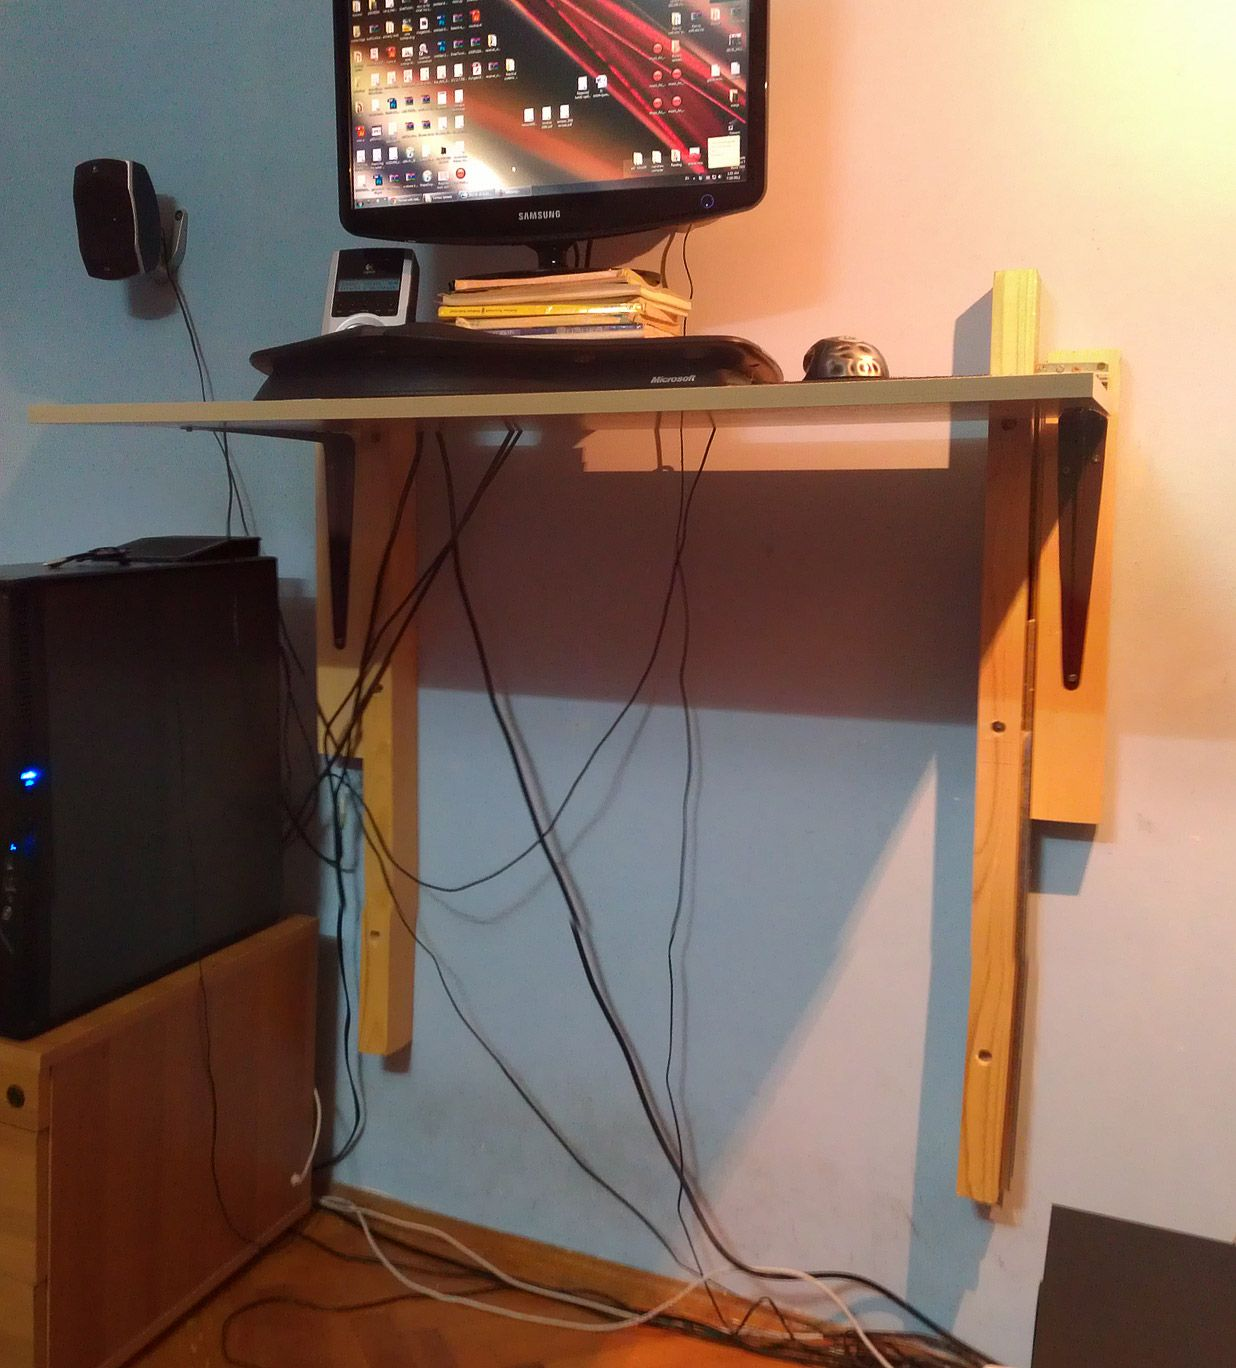 Diy Desktop Standing Desk Cheap Diy Standing Desk Http Bgrz Tumblr Post